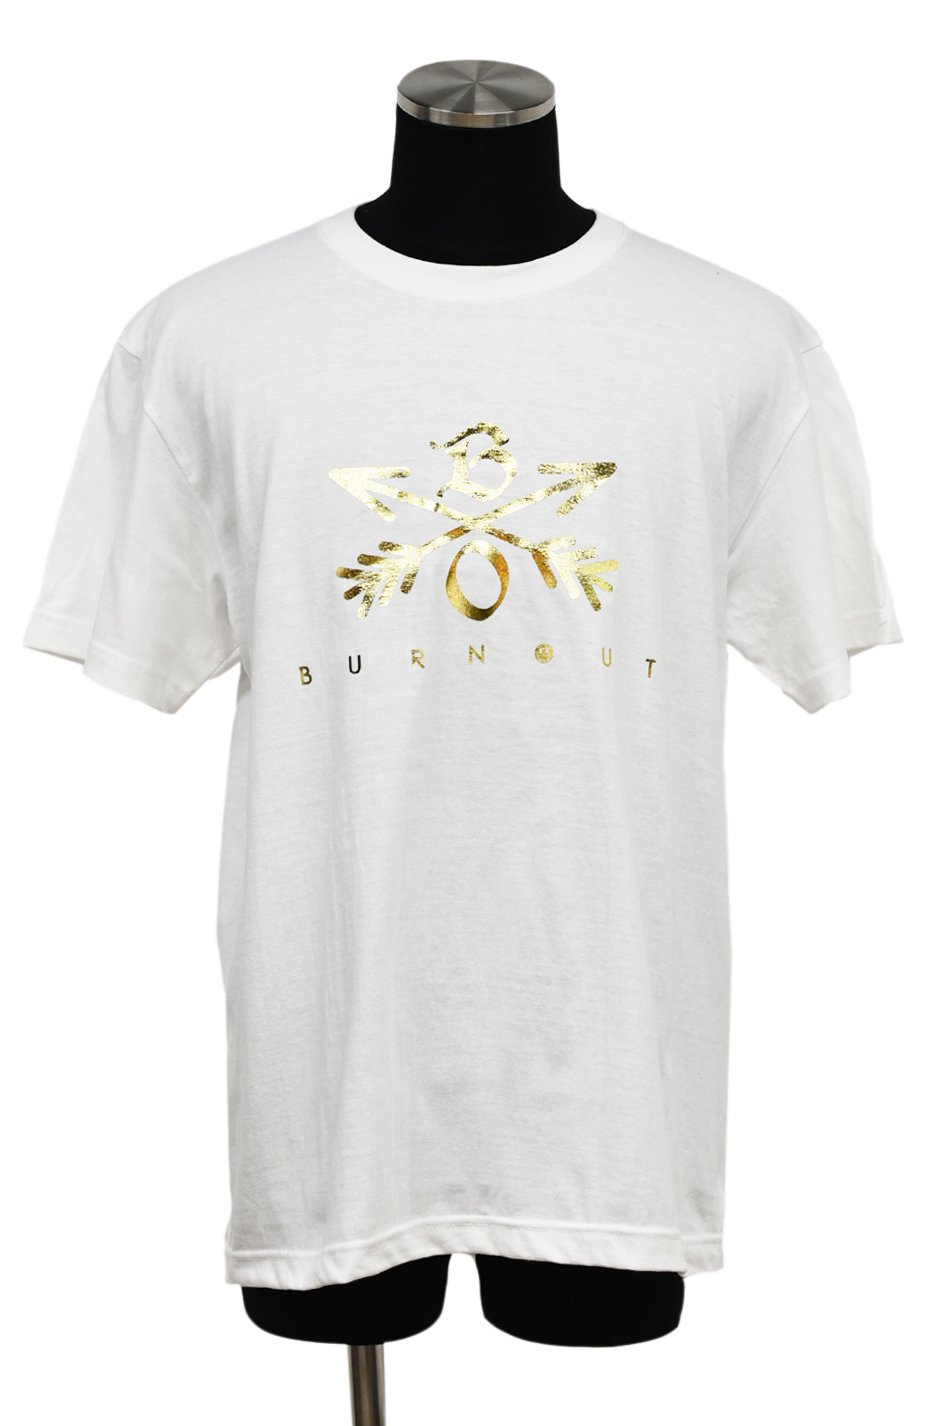 Burnout(バーンアウト) Crossed Arrows T-Shirt 2019 / ホワイト×金箔<img class='new_mark_img2' src='https://img.shop-pro.jp/img/new/icons5.gif' style='border:none;display:inline;margin:0px;padding:0px;width:auto;' />